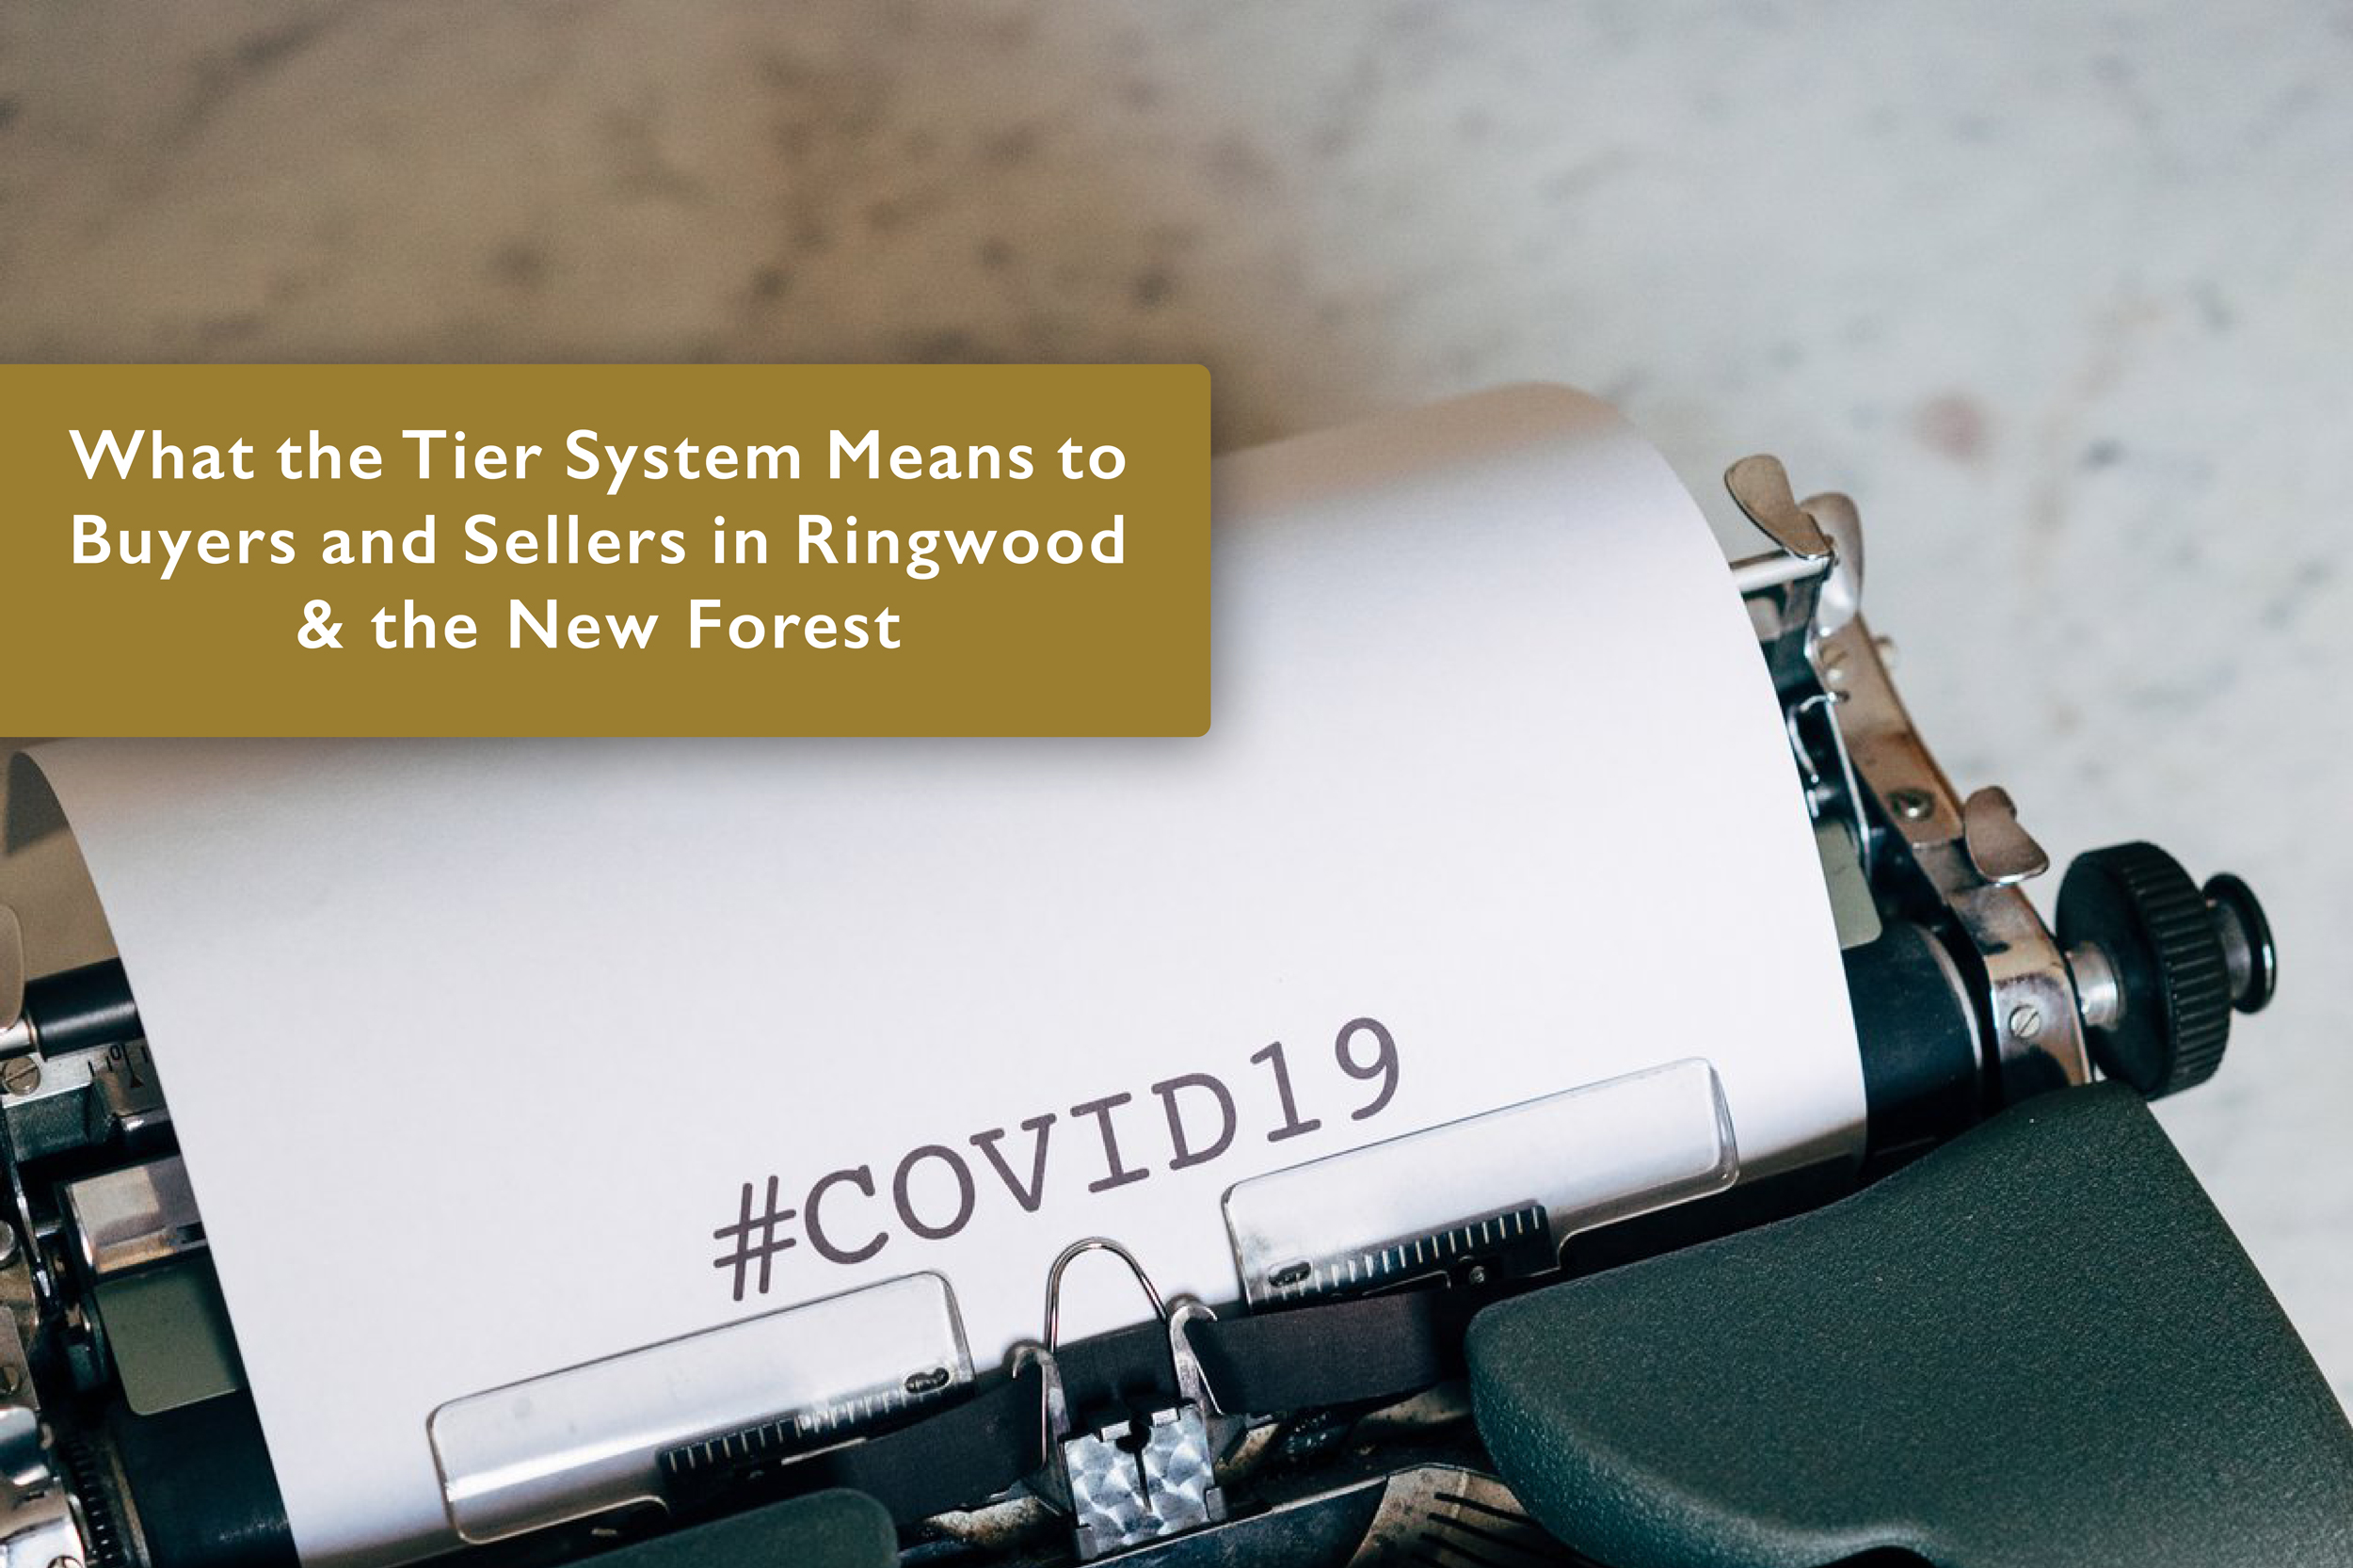 What the Tier System Means to Buyers and Sellers in Ringwood & the New Forest